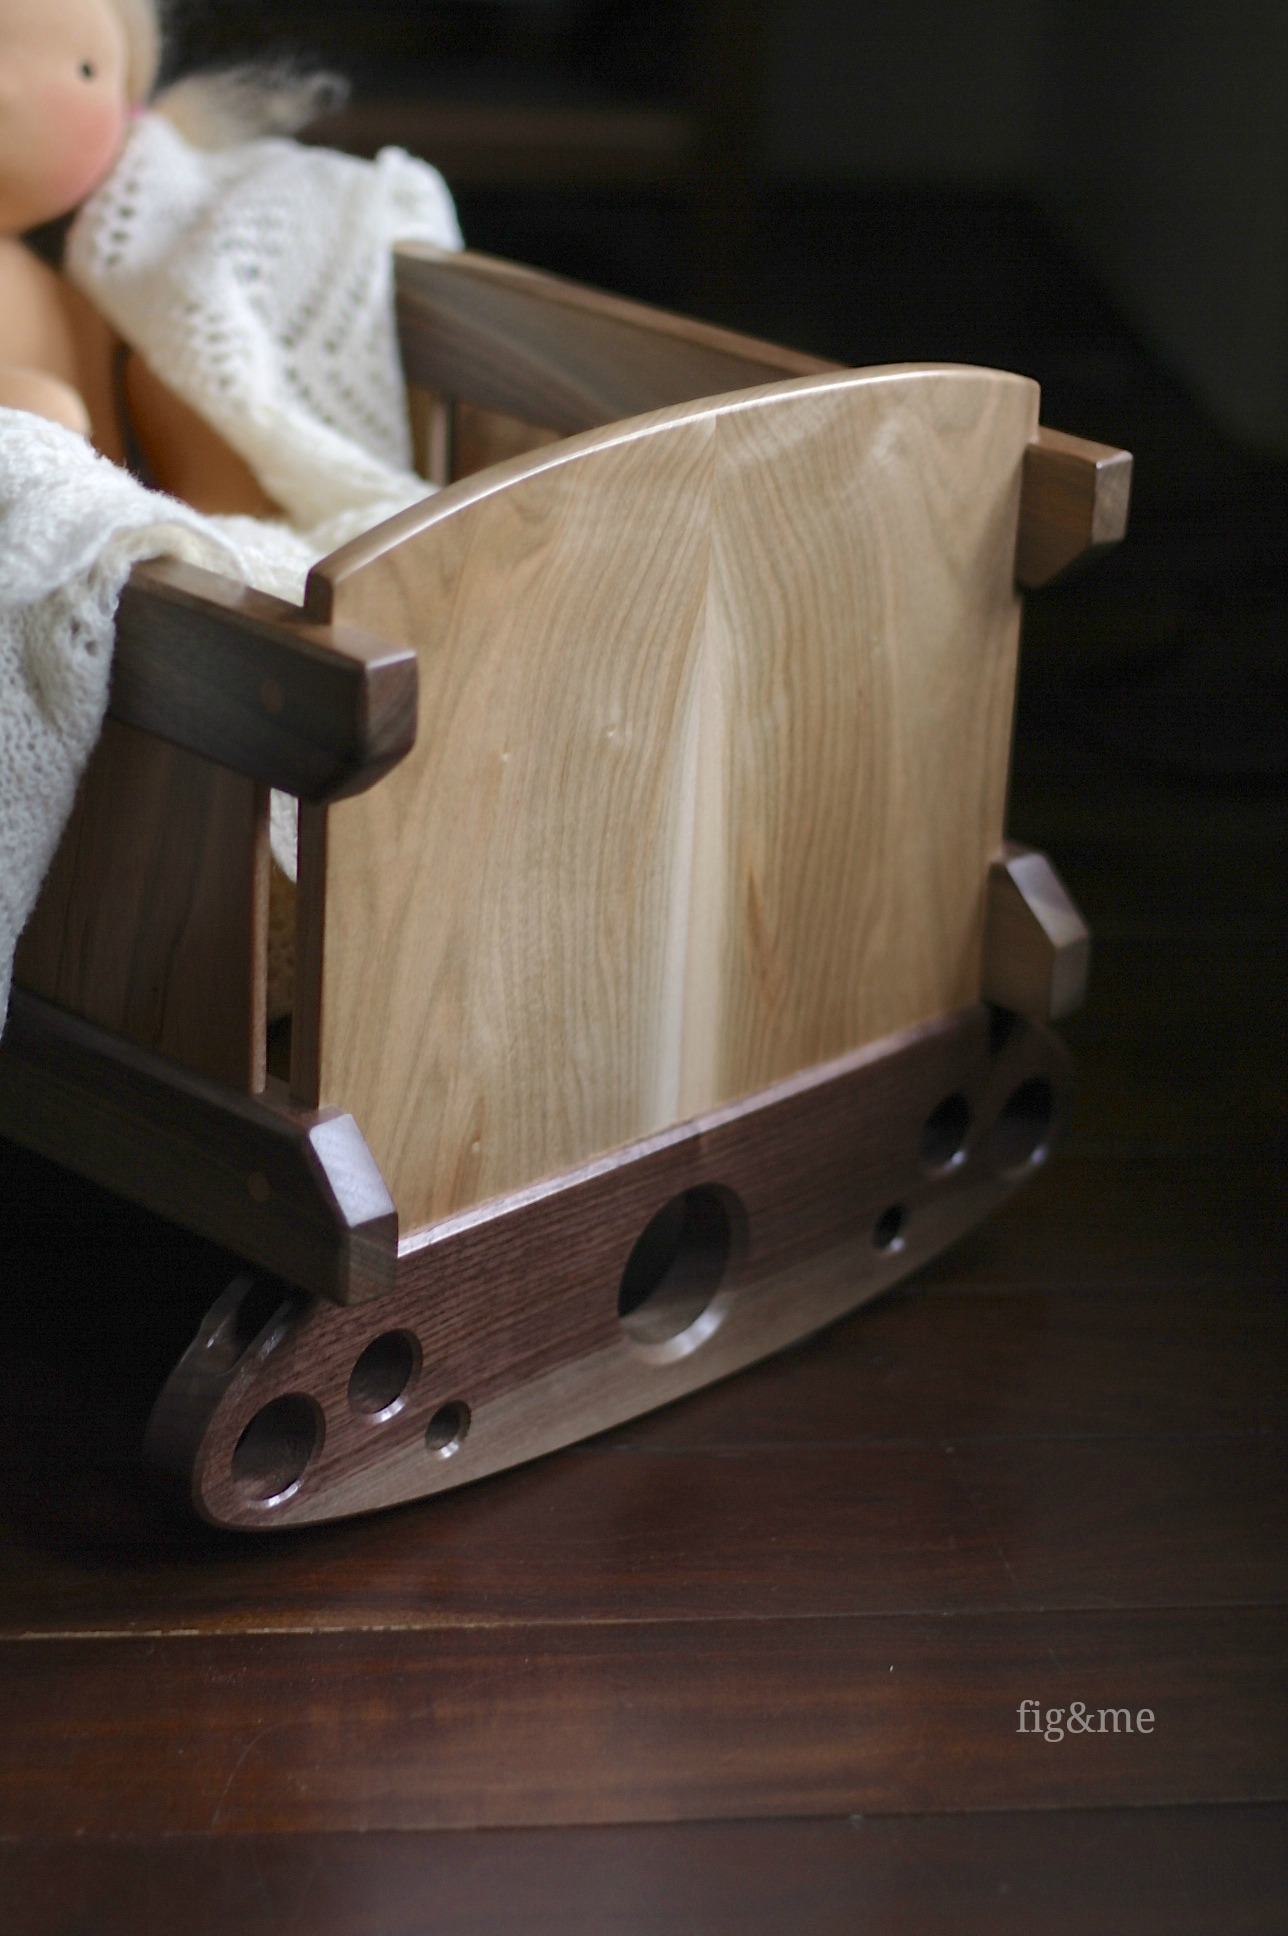 Walnut and bookend details, by Fig&me